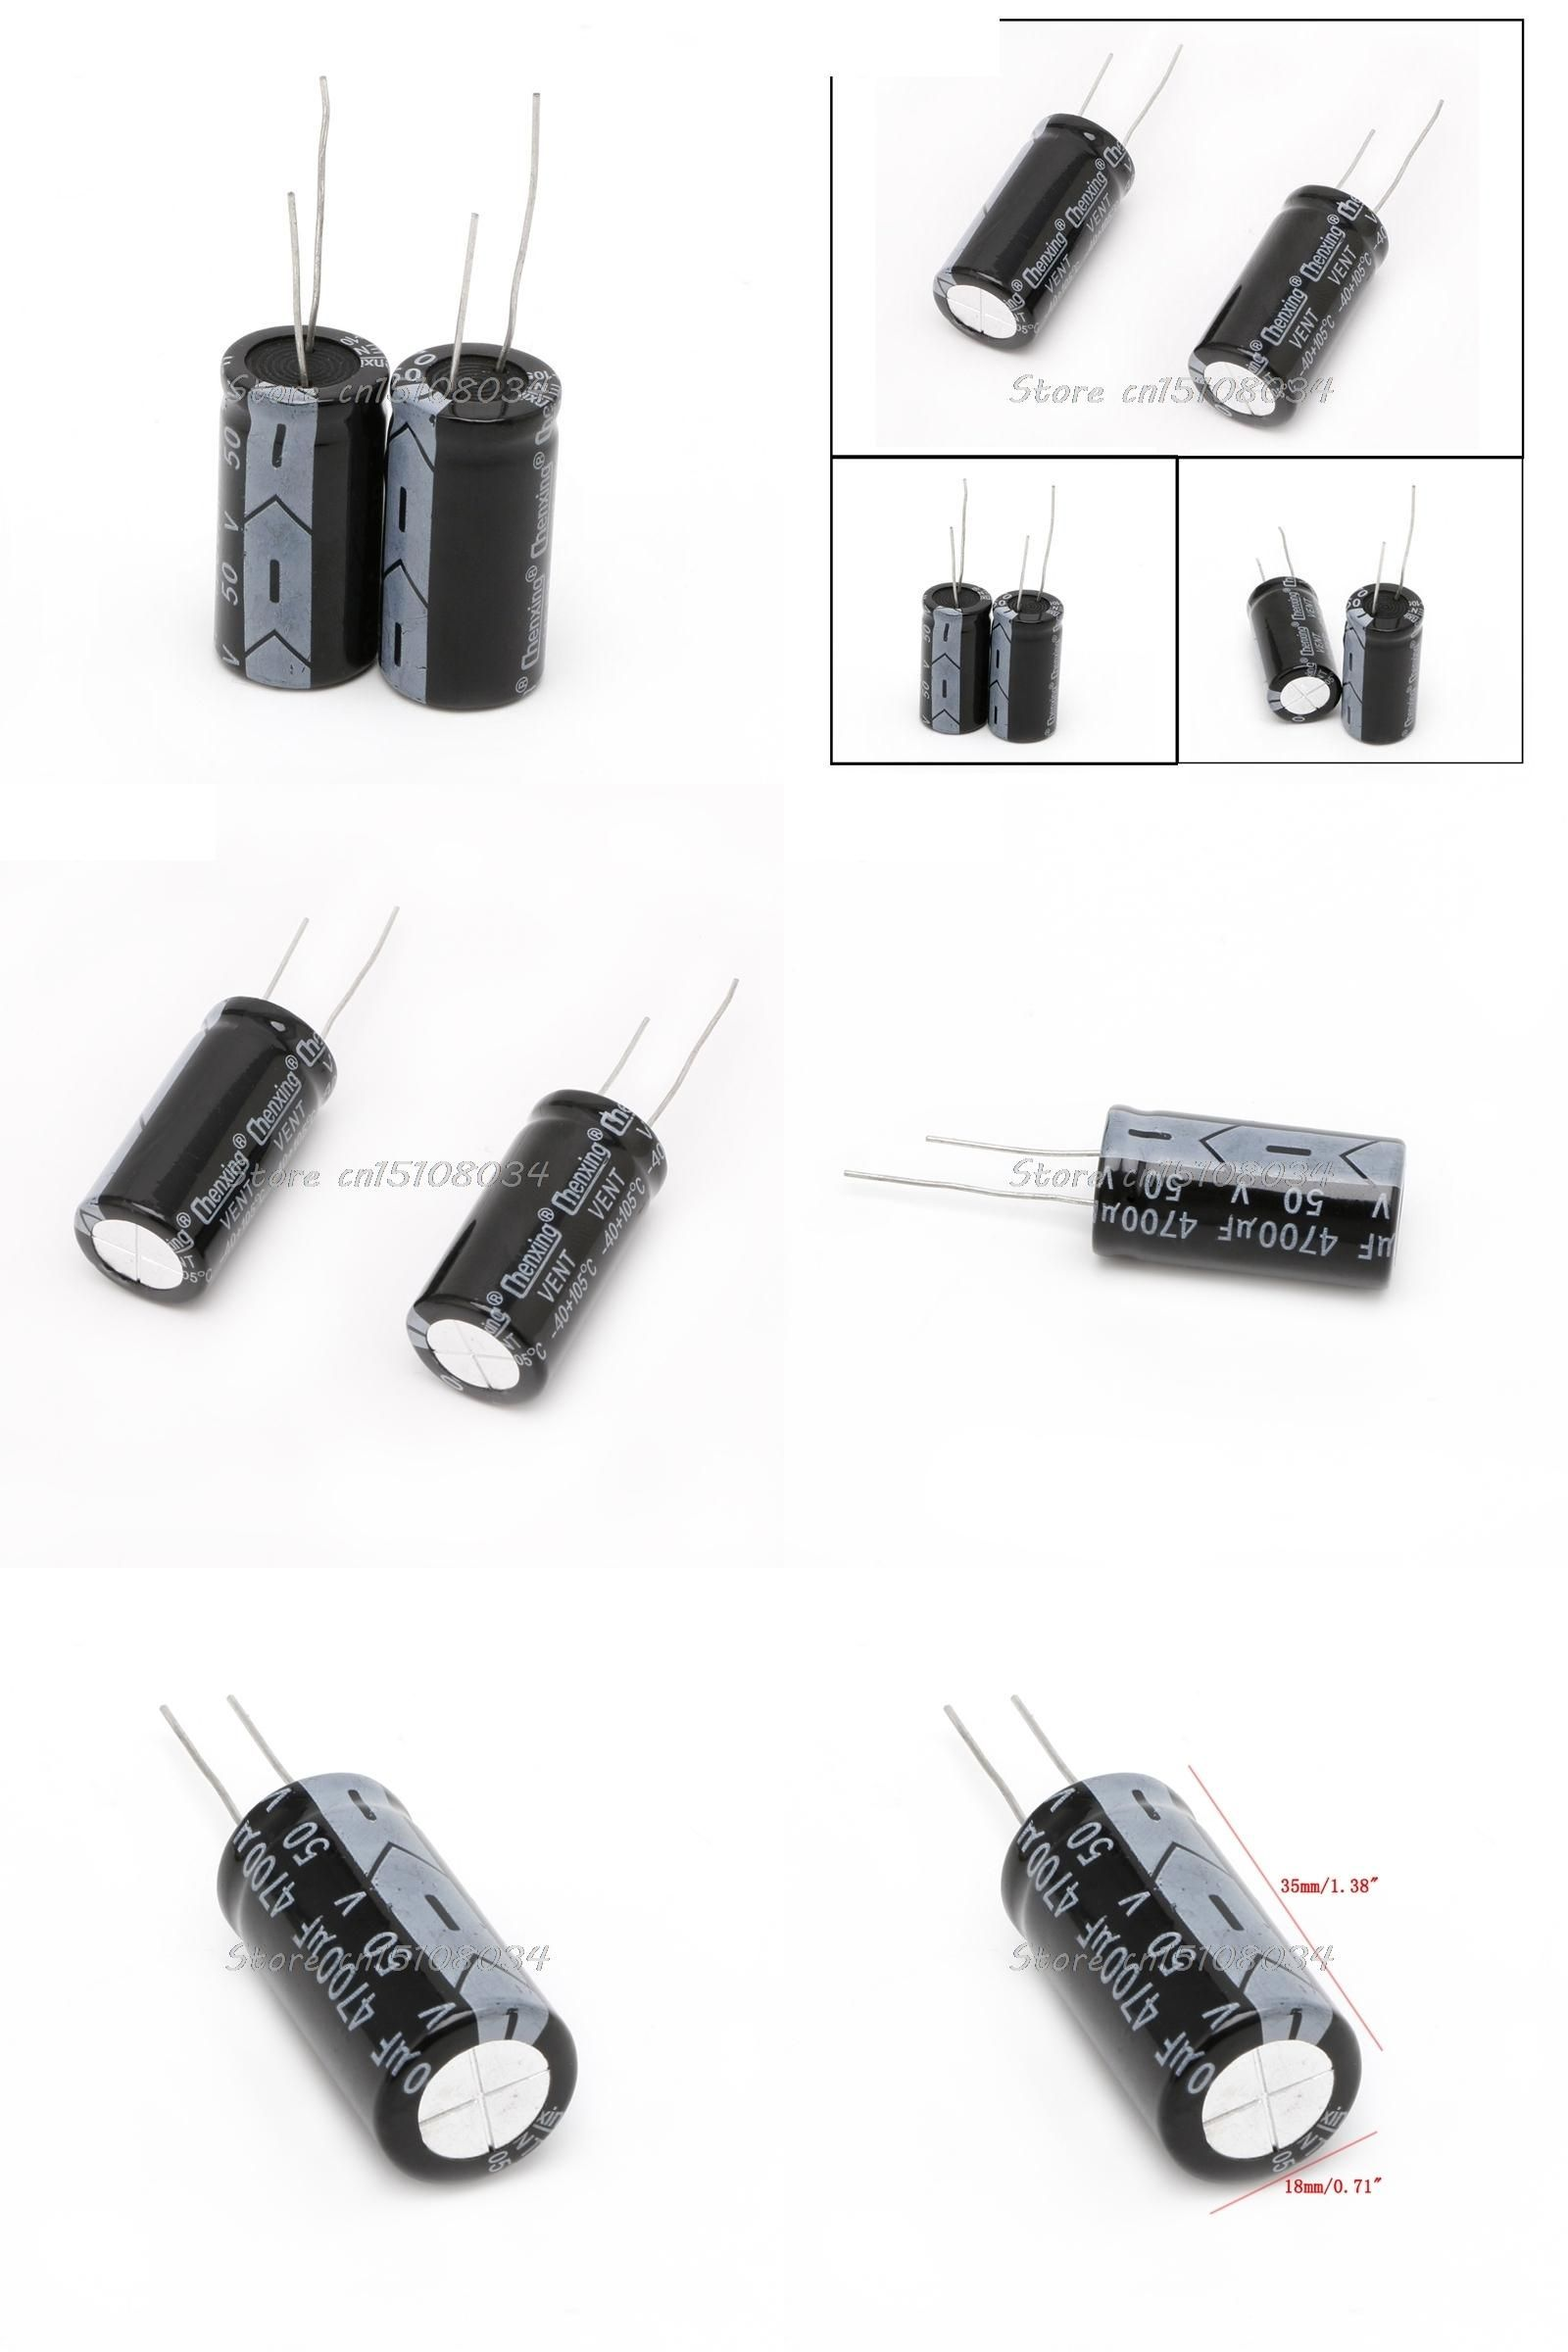 visit to buy  2pcs 50v aluminum electrolytic capacitor 105 degree 4700uf dimension 18 35mm